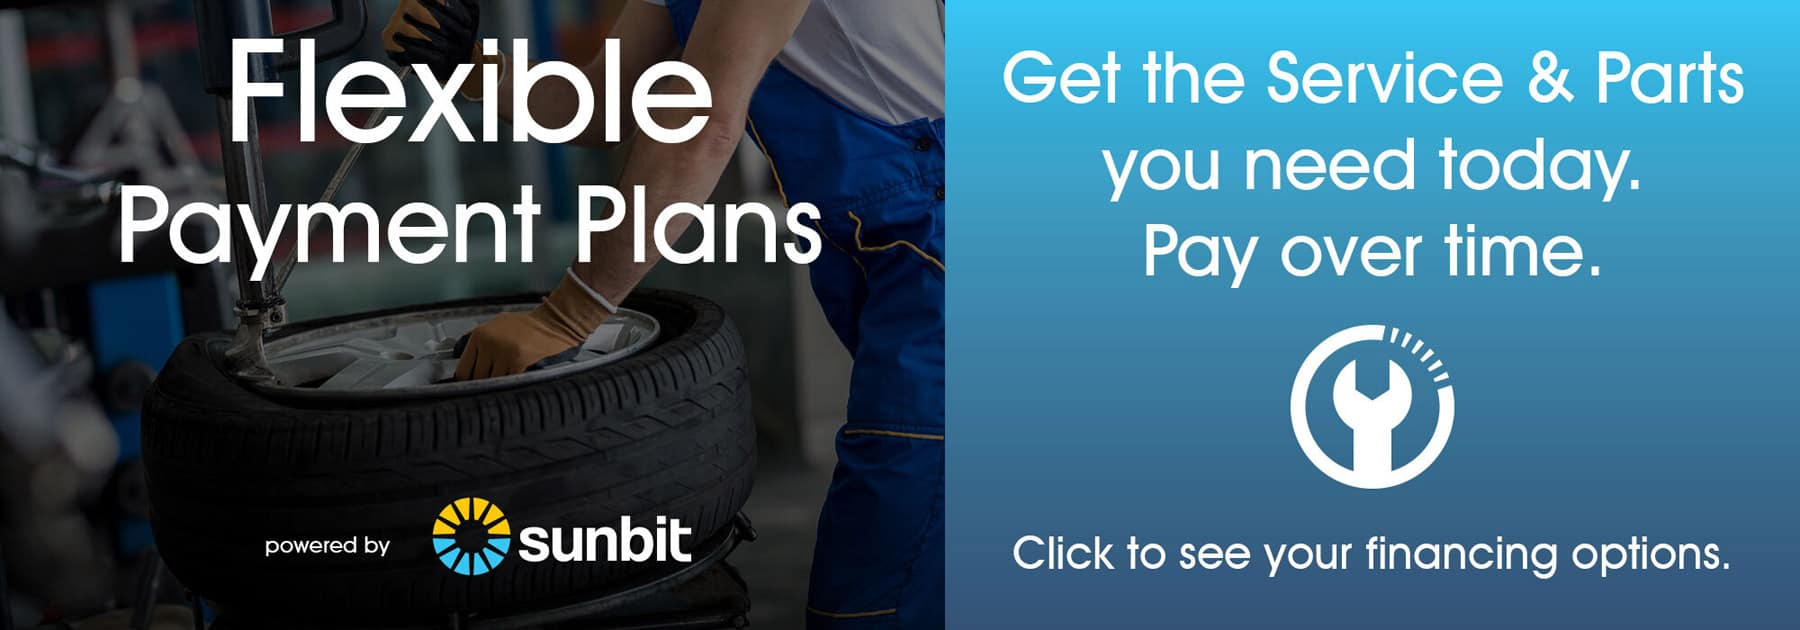 flexable-payment-plans